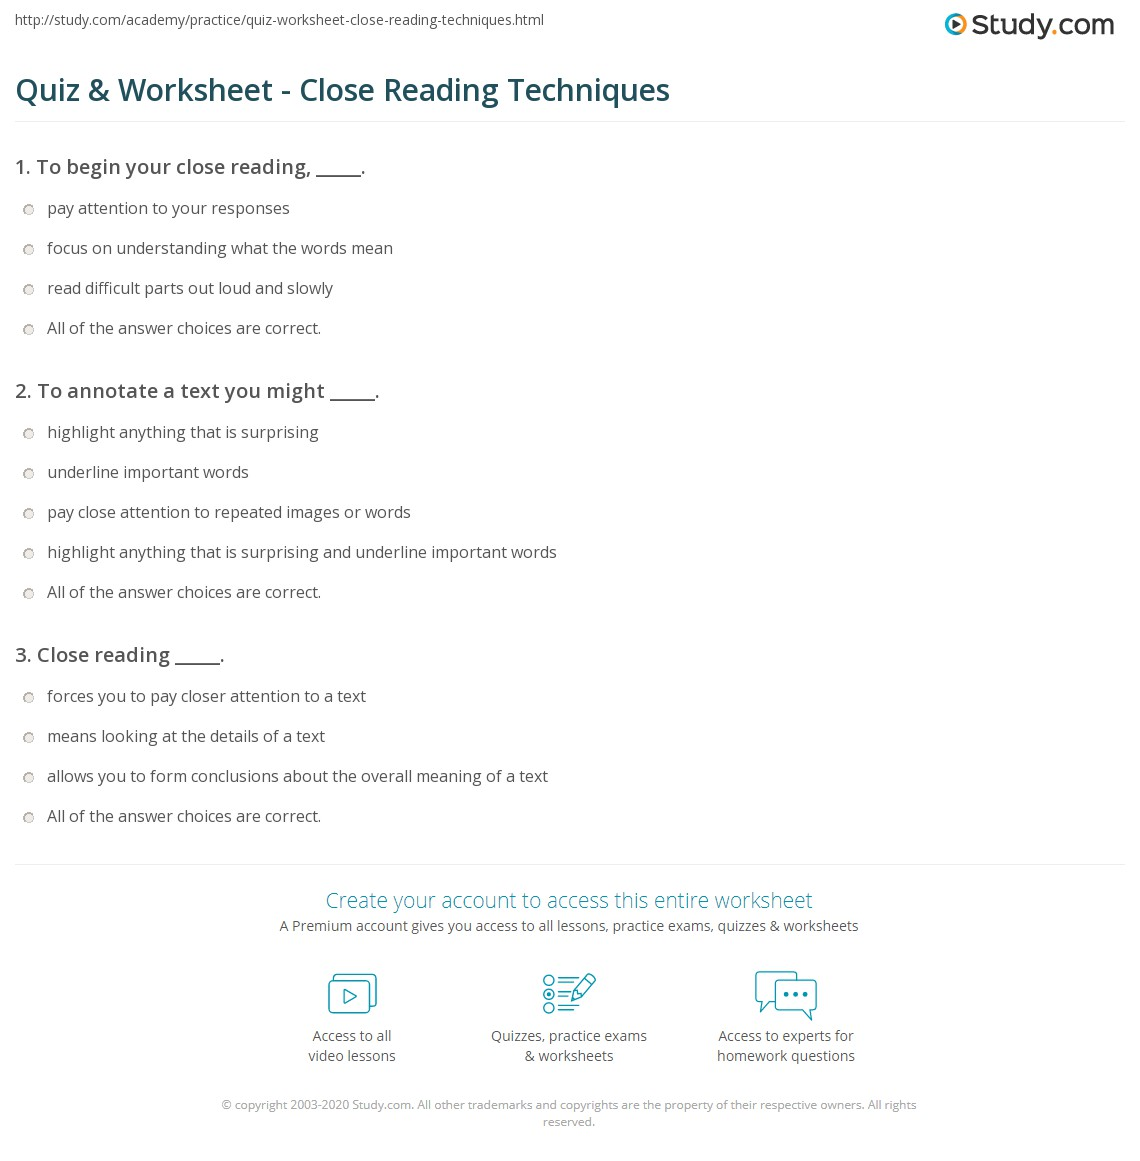 Quiz & Worksheet - Close Reading Techniques | Study.com